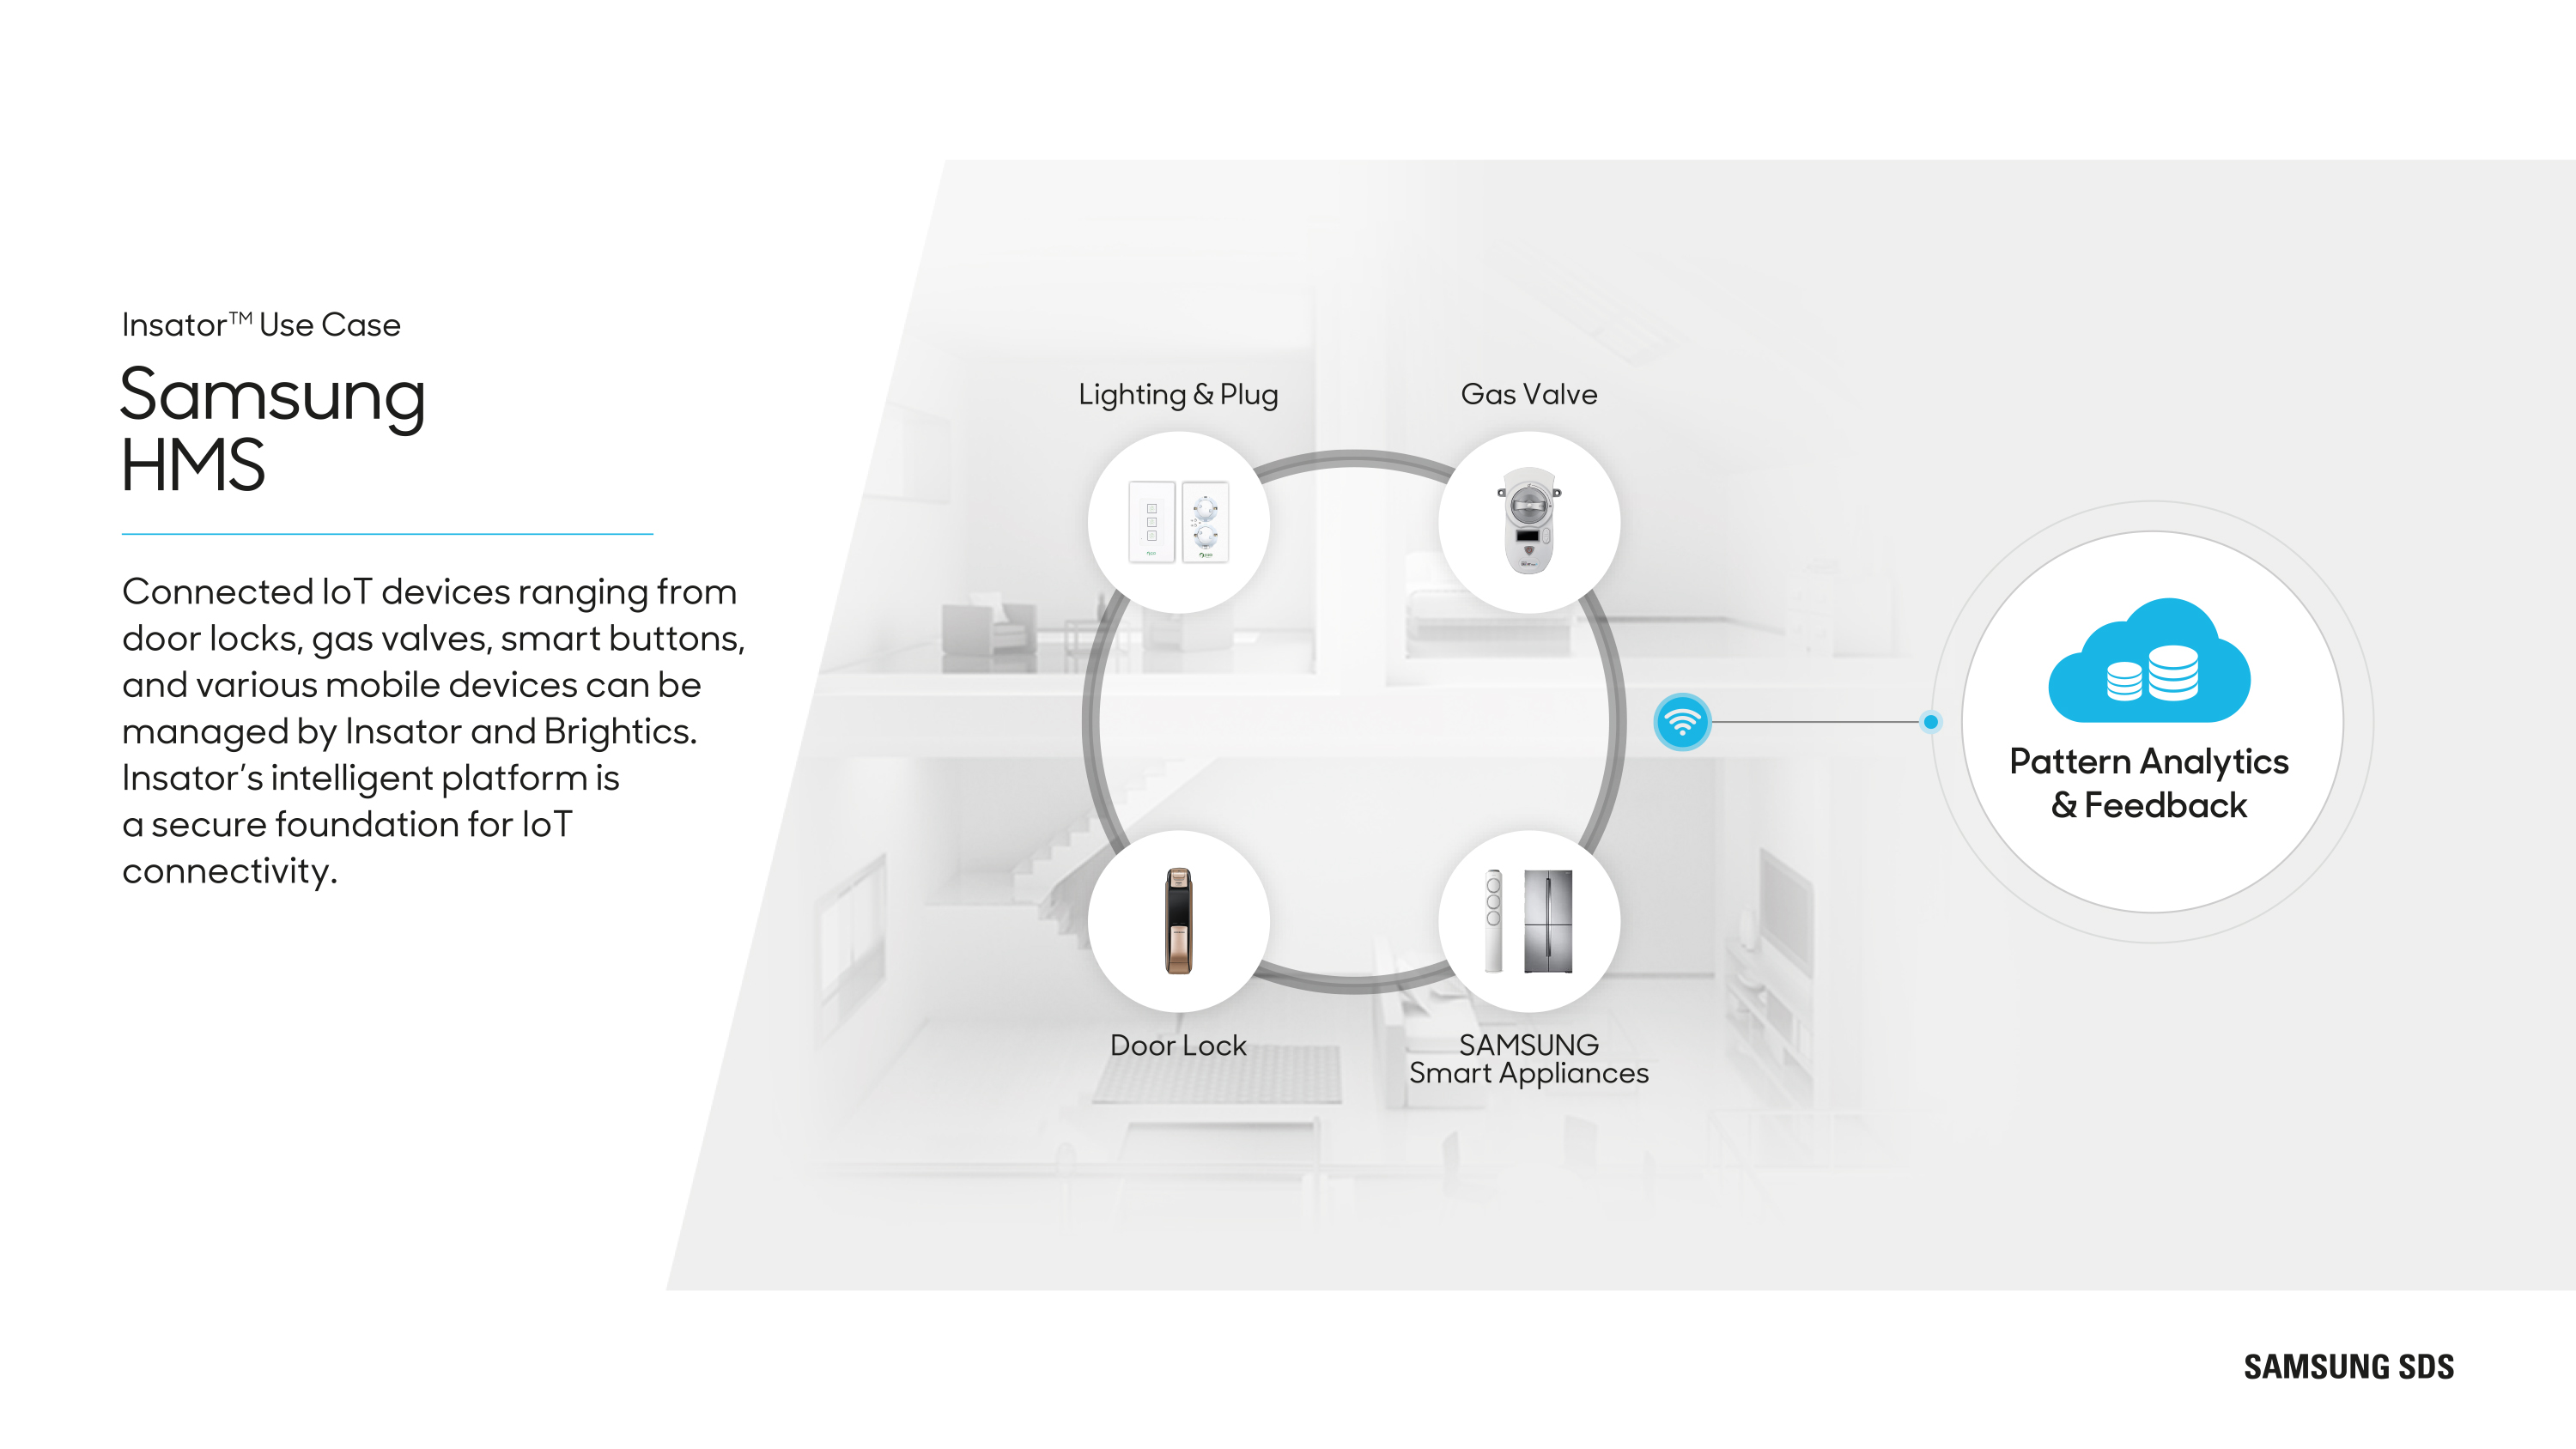 Samsung HMS Connected IoT devices ranging from door locks, gas valves, smart buttons, and various mobile devices can be managed by Insator and Brightics. Insator's intelligent platform provides a secure foundation for all IoT connectivity.